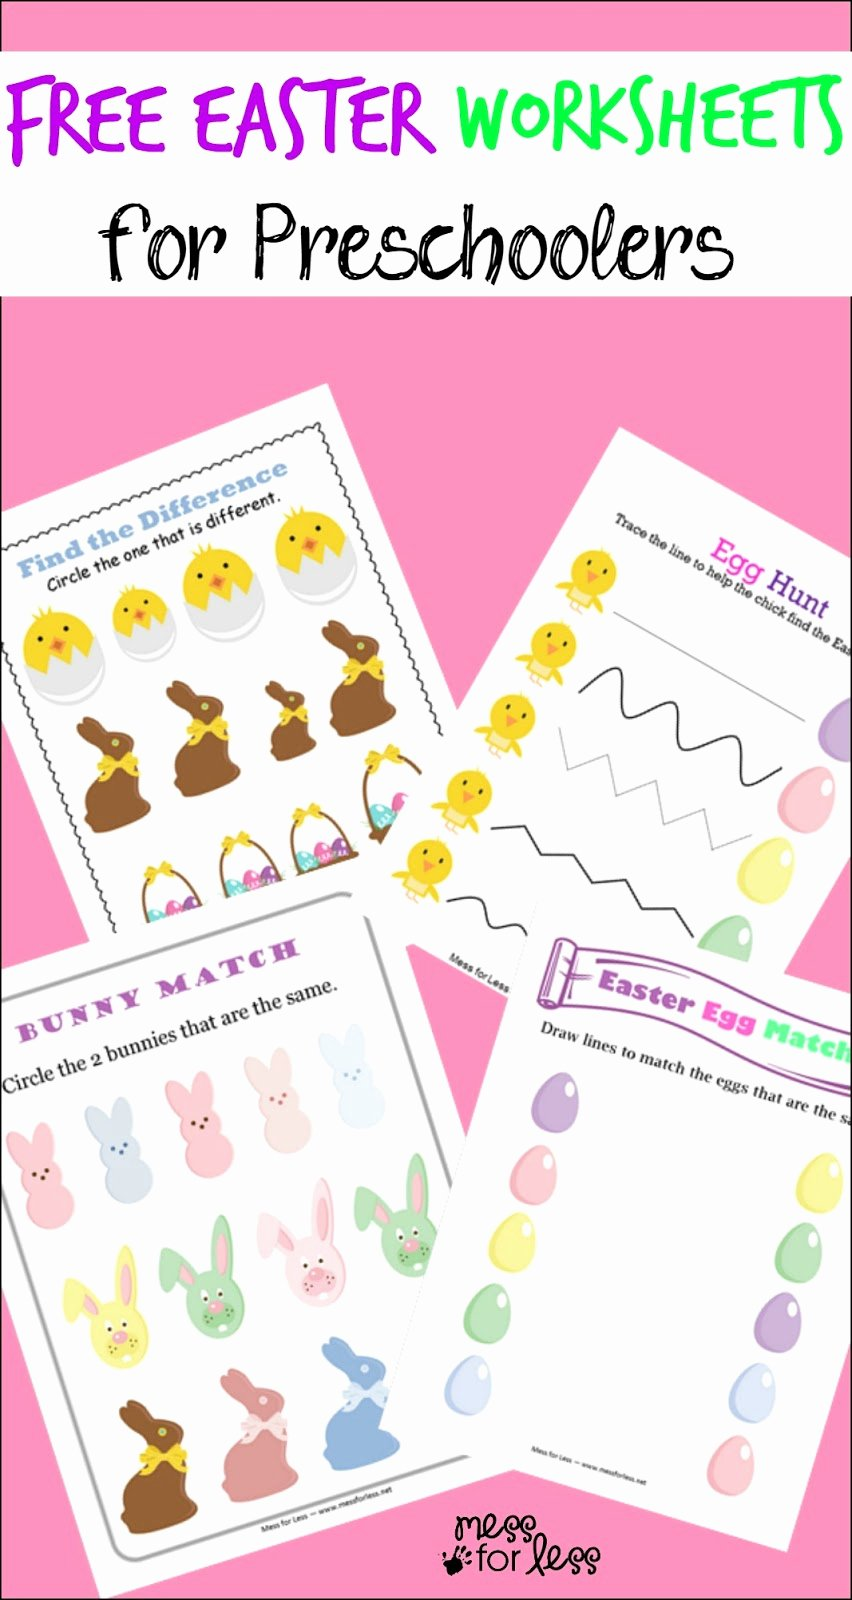 Free Printable Easter Worksheets for Preschoolers Ideas Free Easter Preschool Worksheets Mess for Less